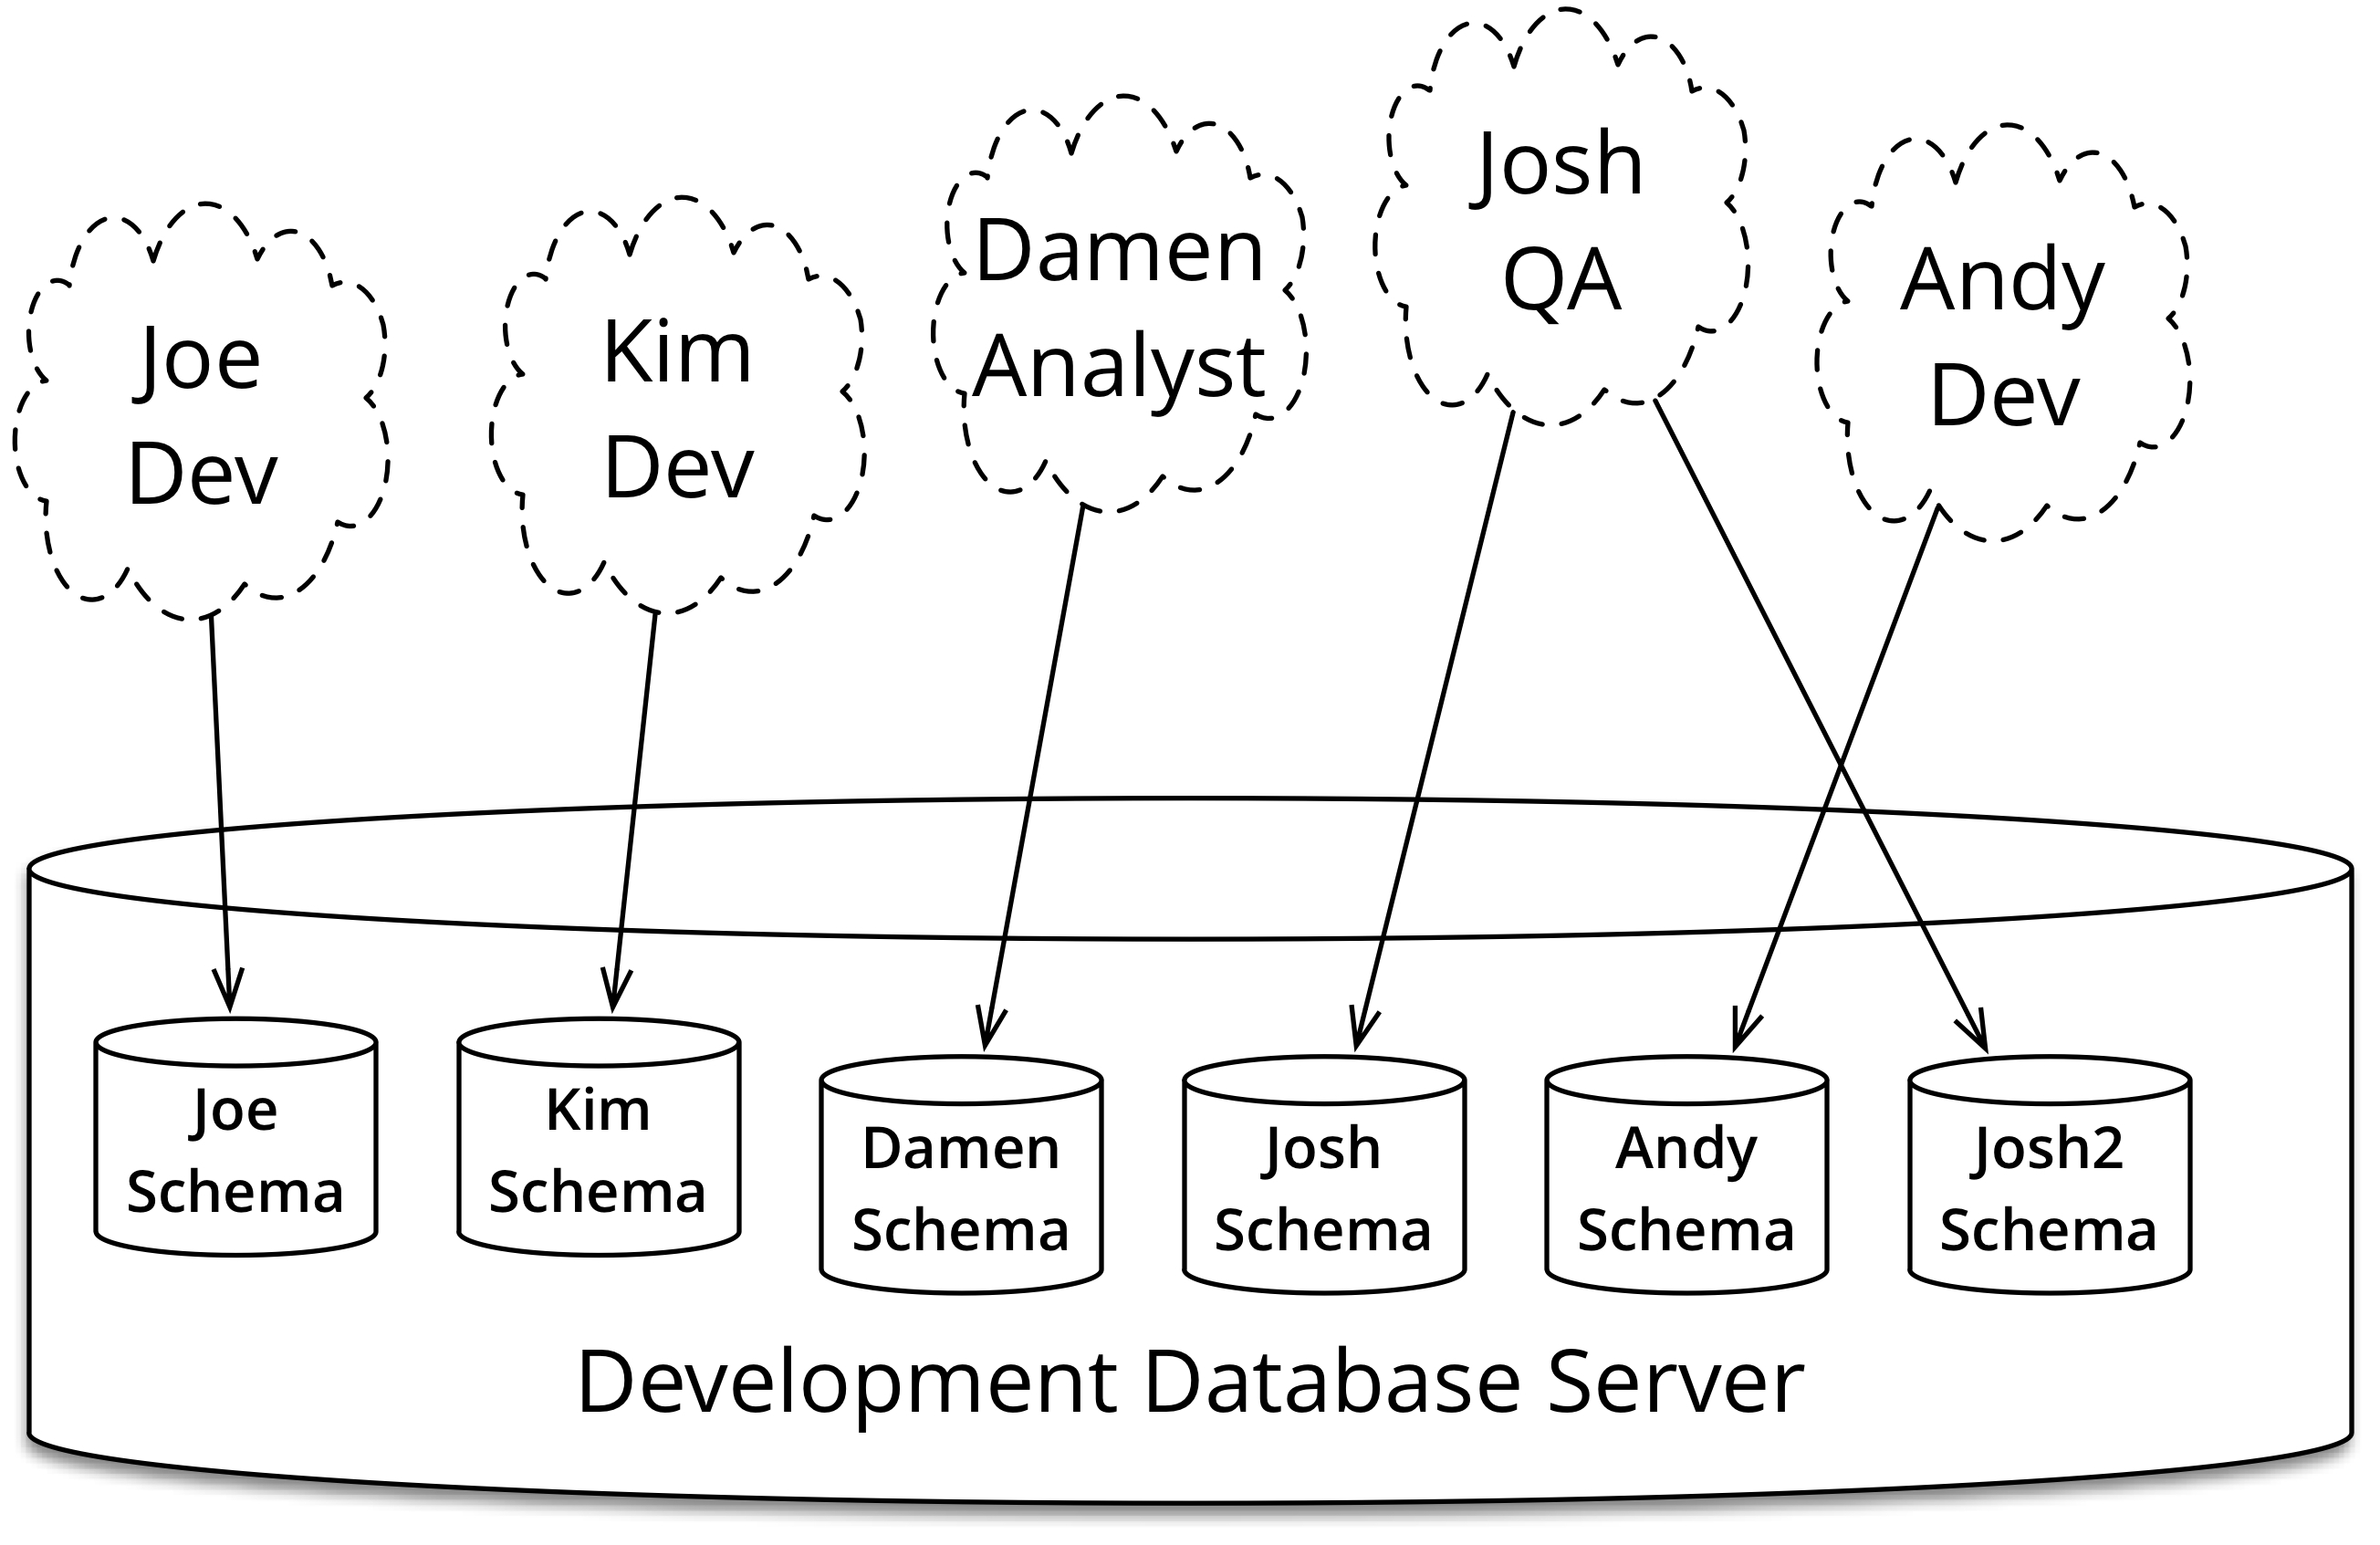 Evolutionary Database Design Addition Warehouse Business Workflow Diagram On Tool Figure 6 Every Member Of The Team Gets Their Own Schema For Development And Testing